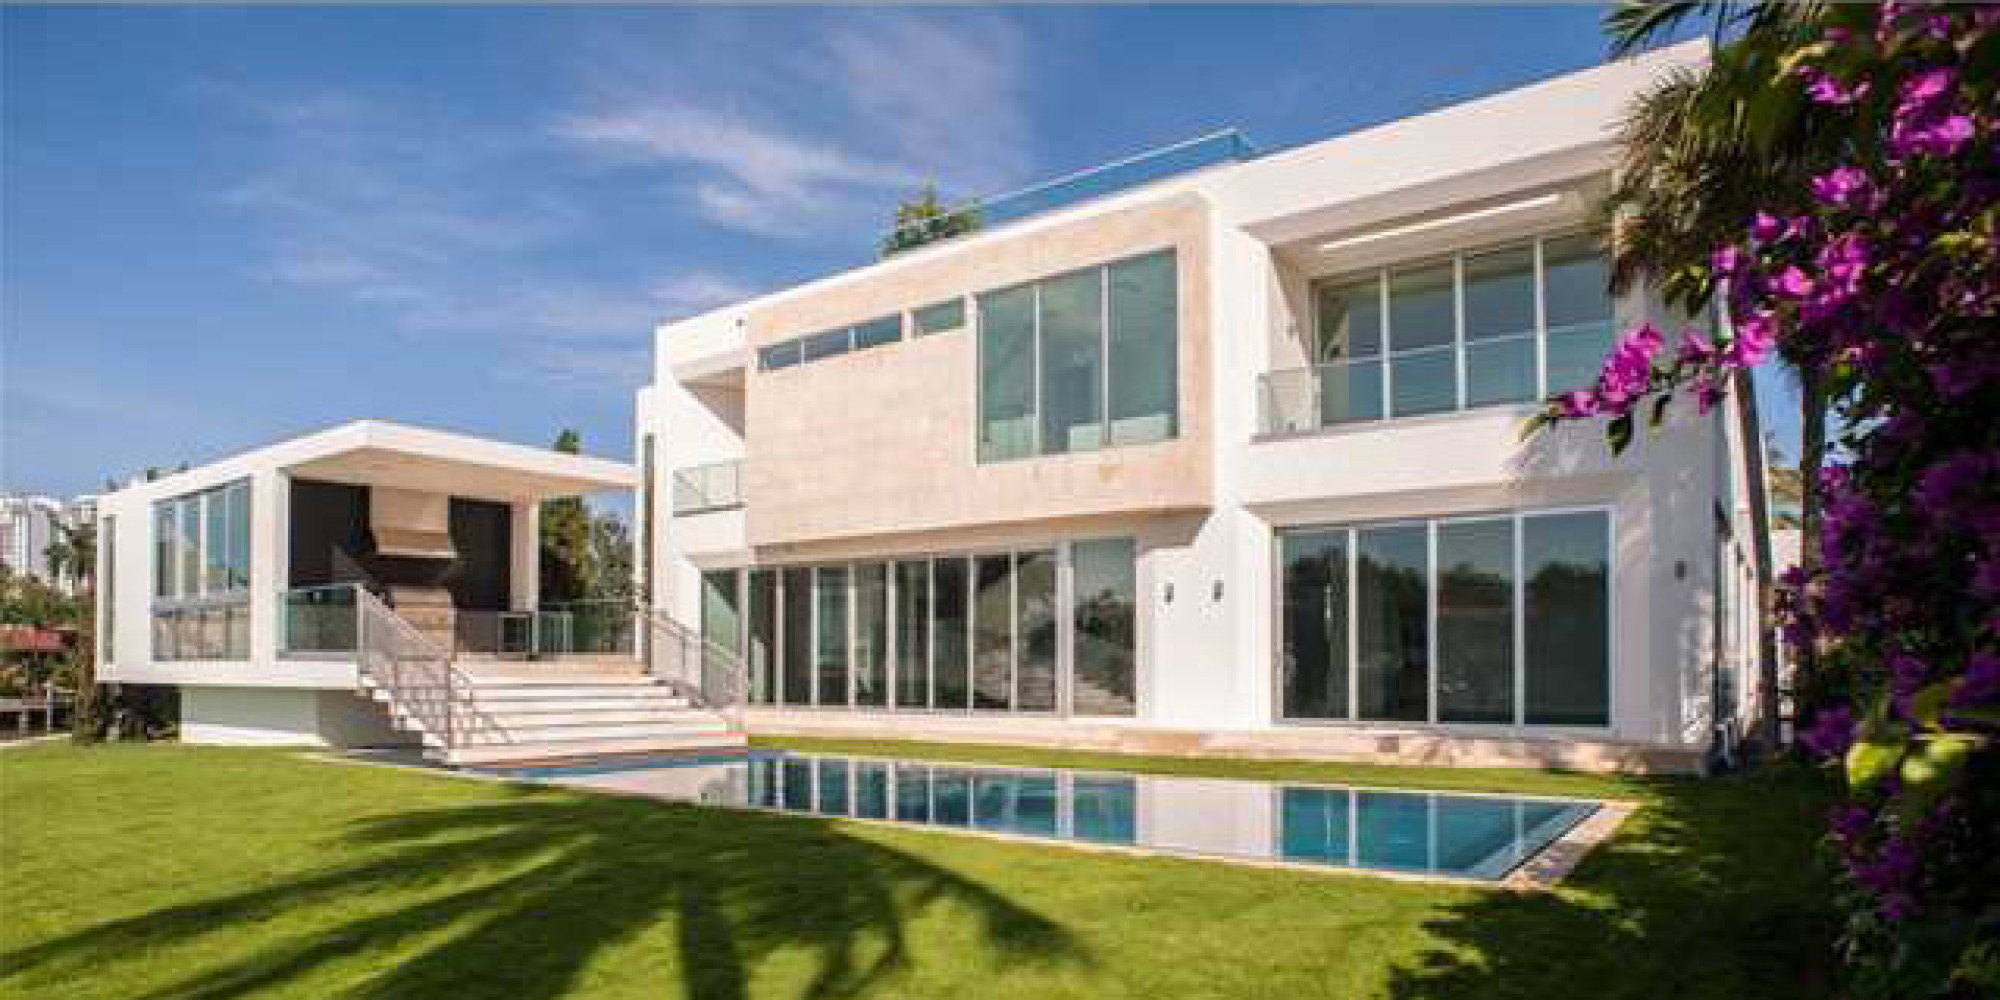 Miami 39 s most expensive rentals will make your jaw drop for Biggest house in miami